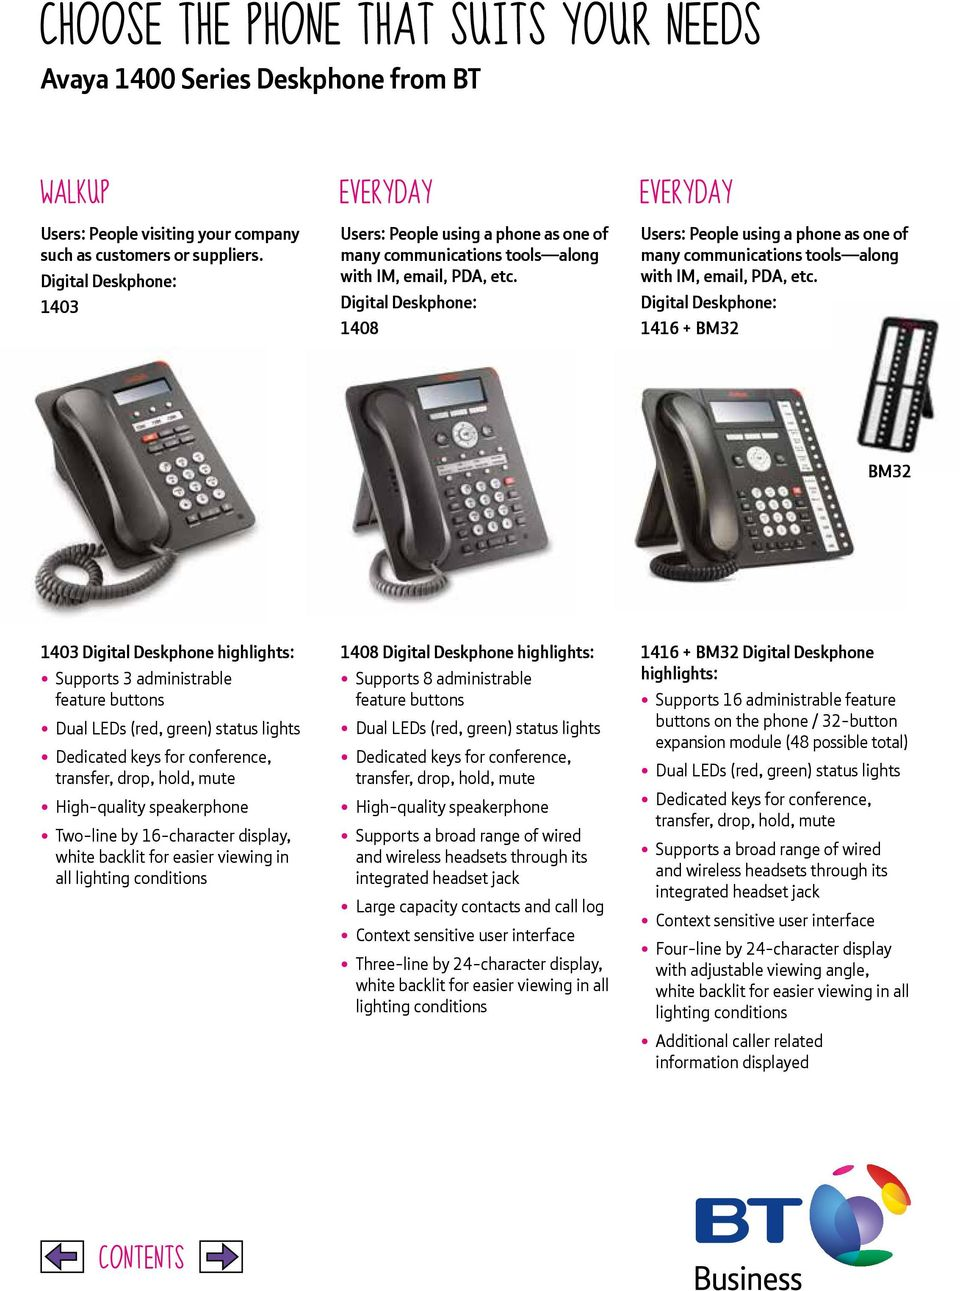 Digital Deskphone: 1408 Users: People using a phone as one of many communications tools along with IM, email, PDA, etc.